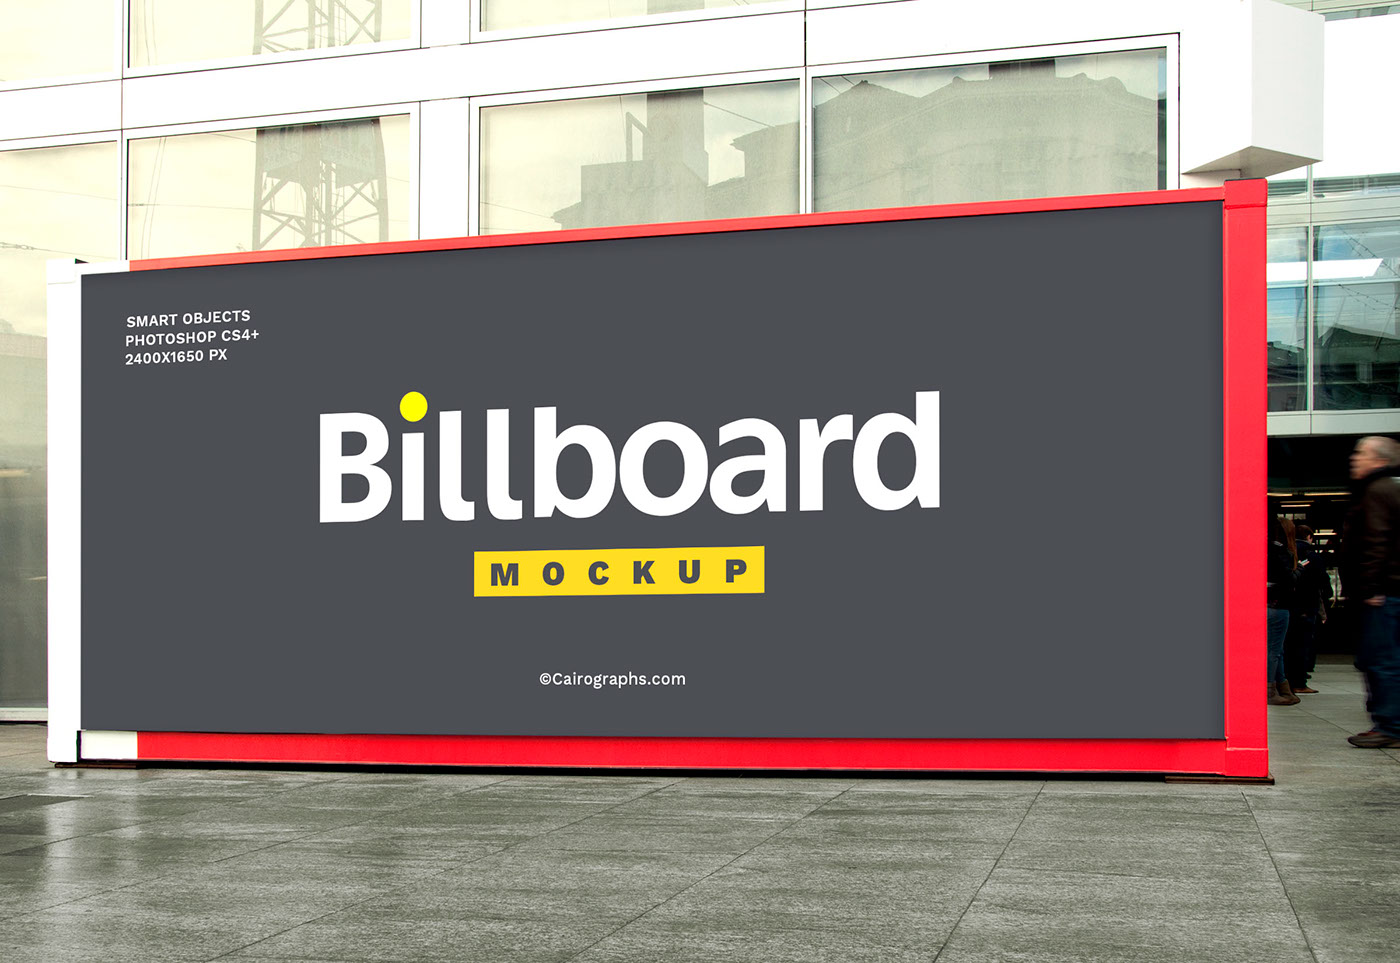 ads advertisement Mockup banner billboard business campaign company Display editable Outdoor photorealistic